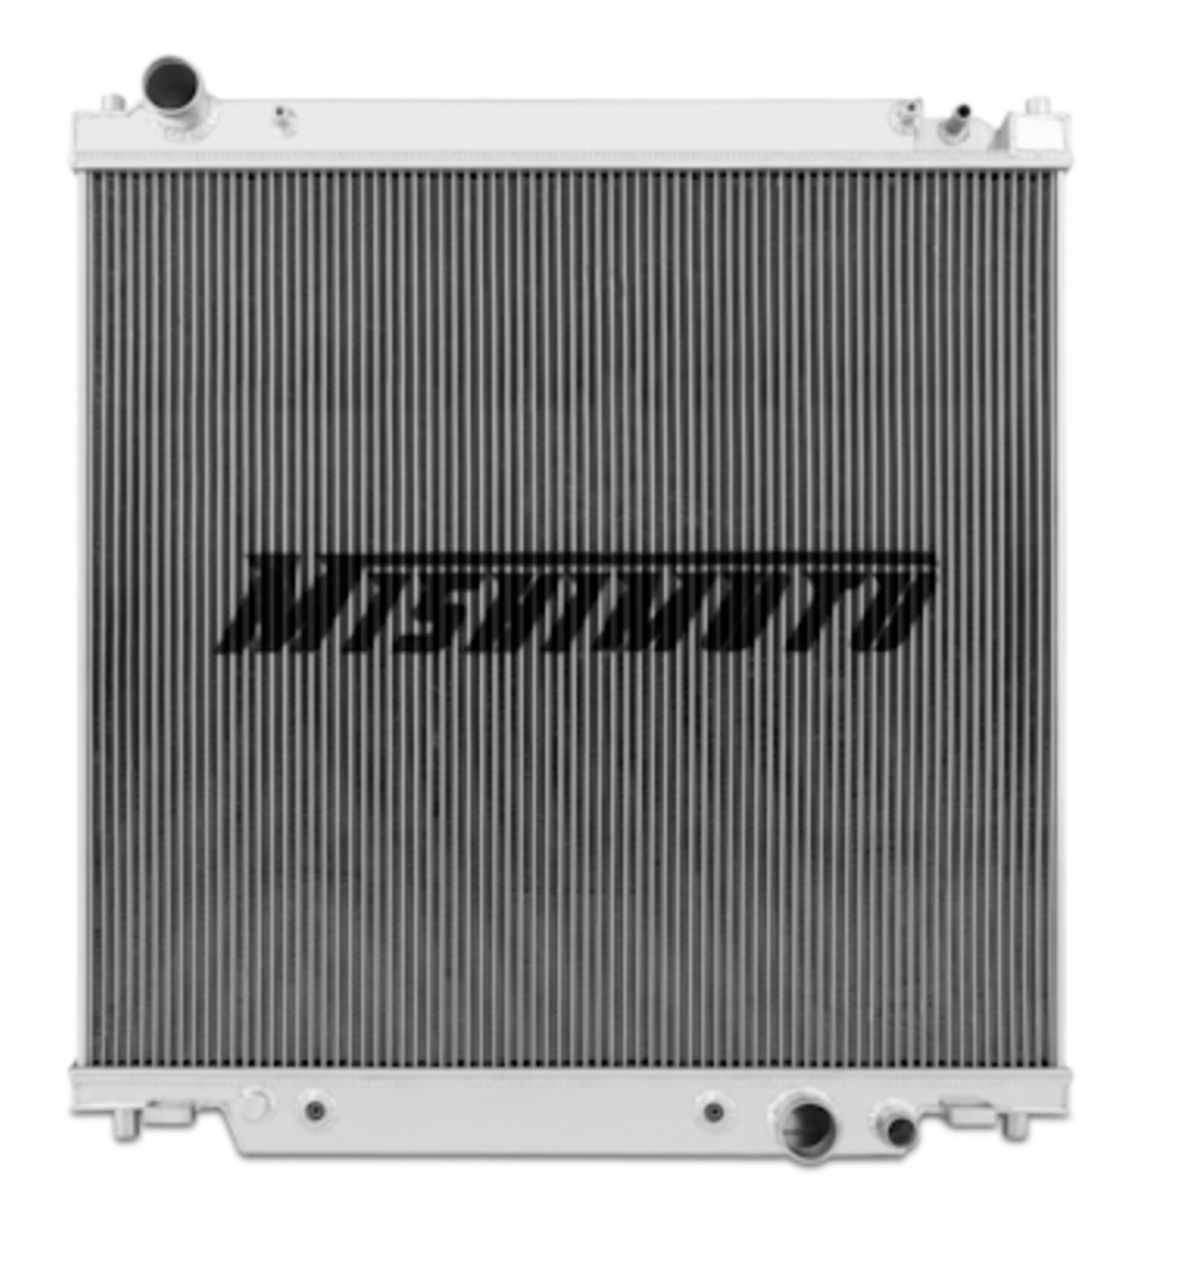 Mishimoto Low Temp Thermostat for 96-03 F250 Super Duty 7.3L Powerstroke